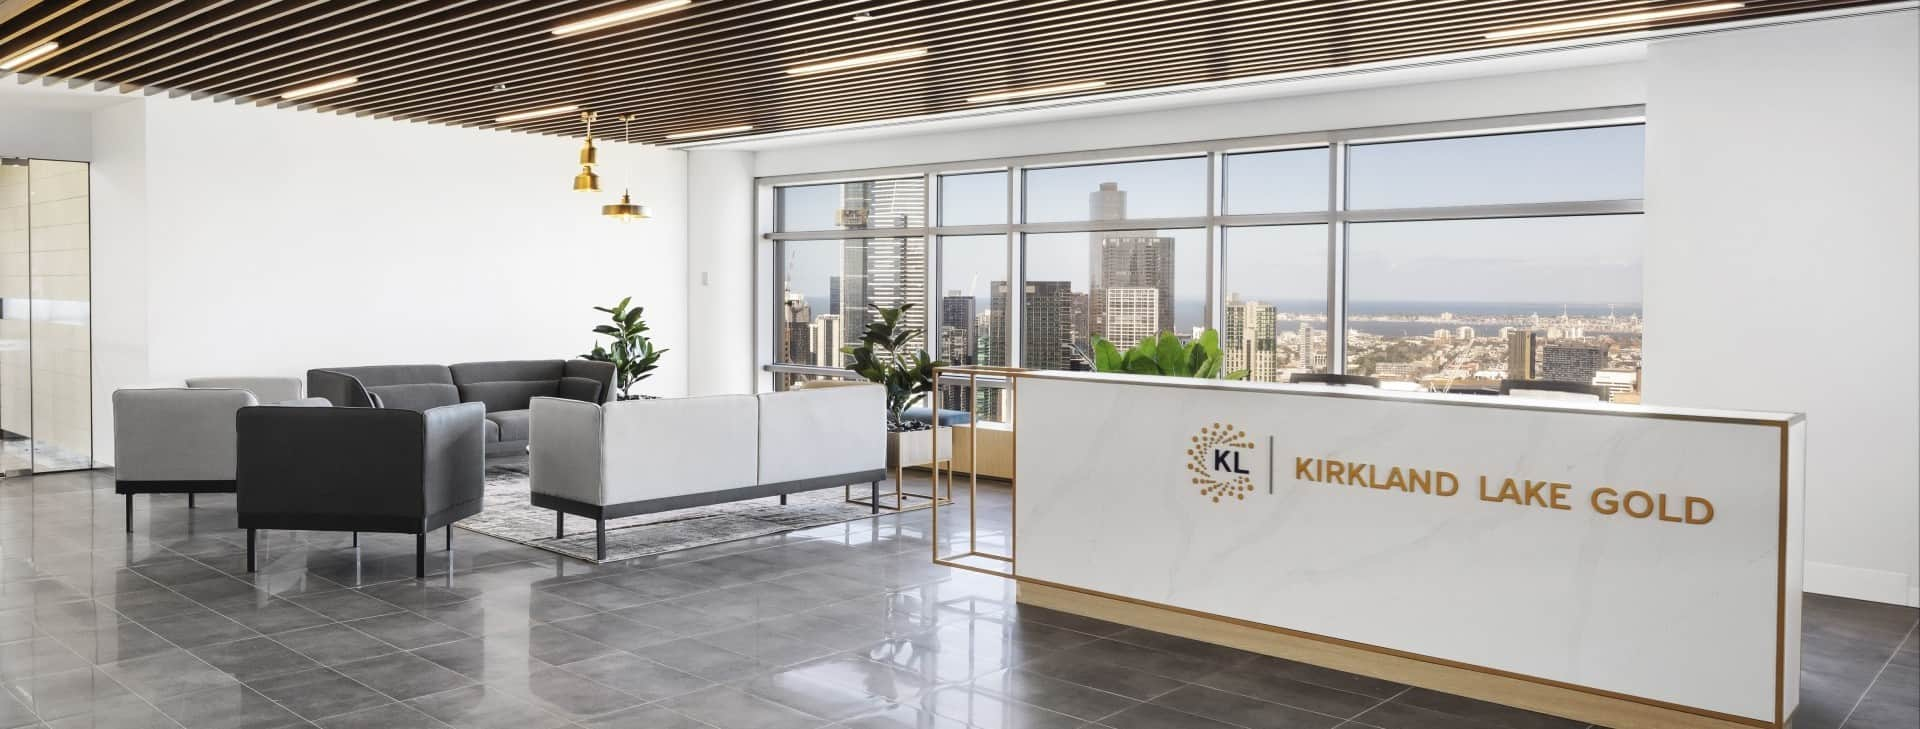 Office Fit Outs Melbourne, Kirkland Lake Gold | Contour Interiors